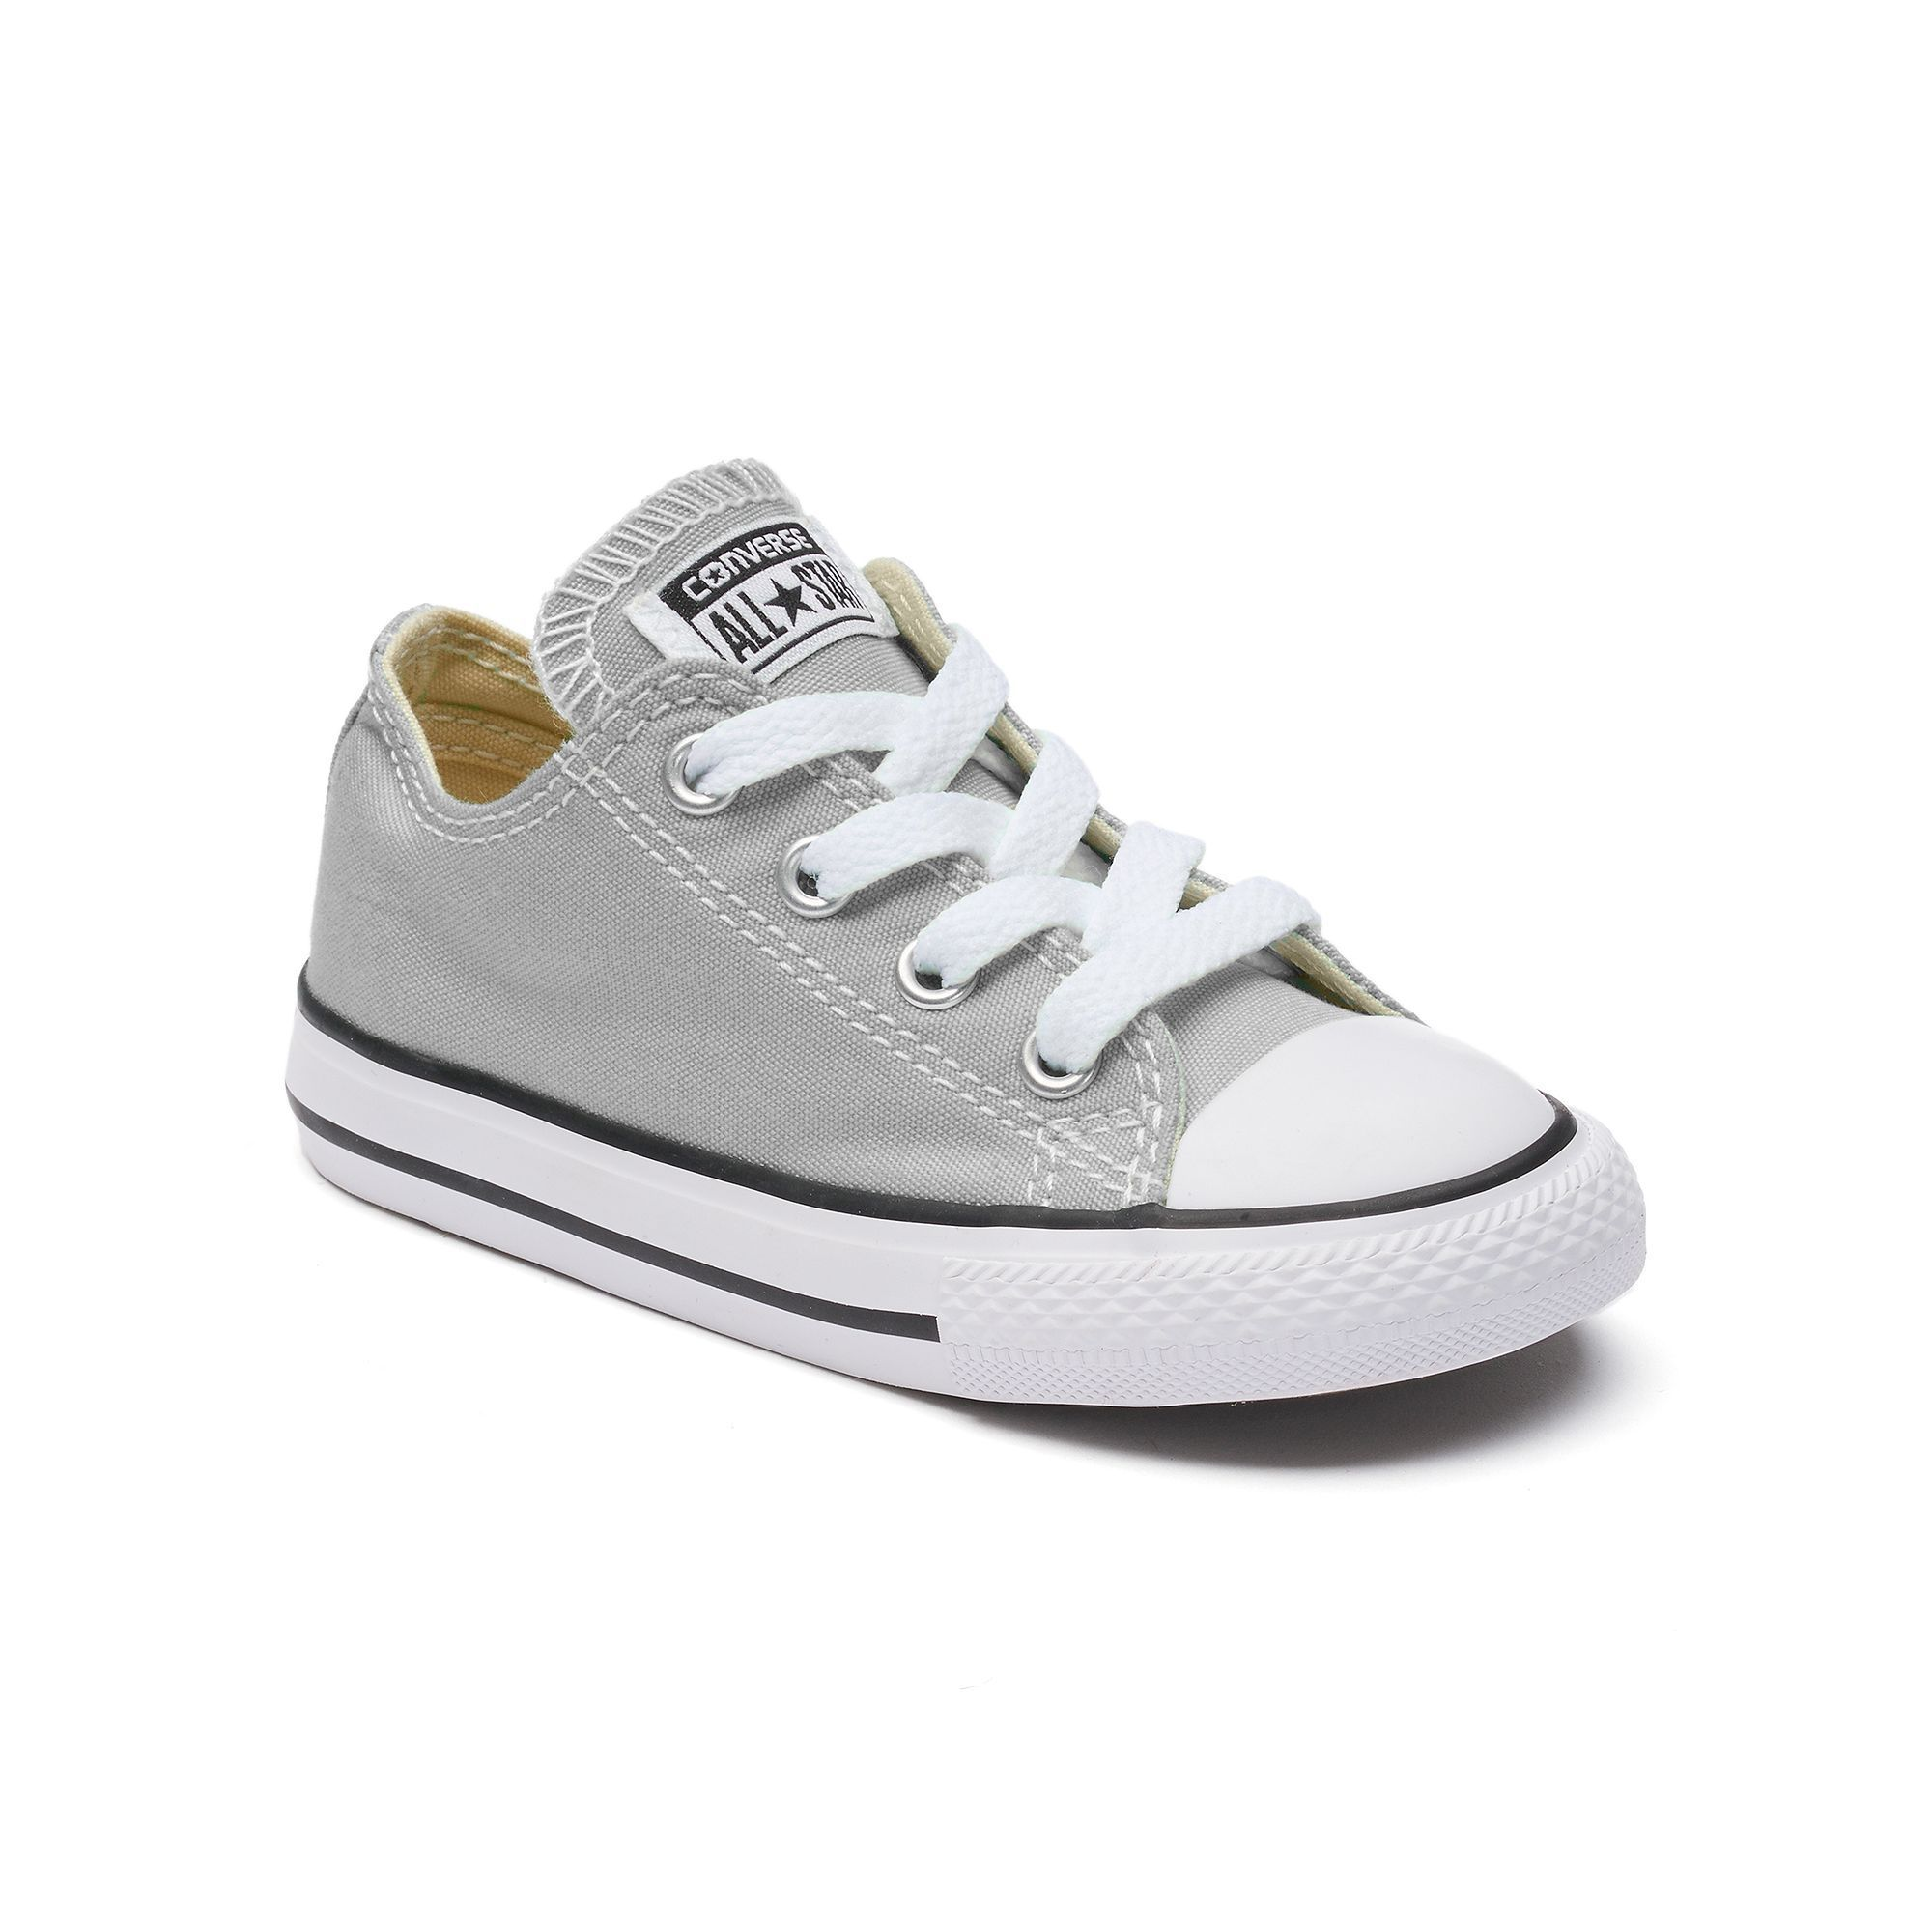 Toddler Converse Chuck Taylor All Star Sneakers, Toddler Unisex, Size: 4 T, Grey Other